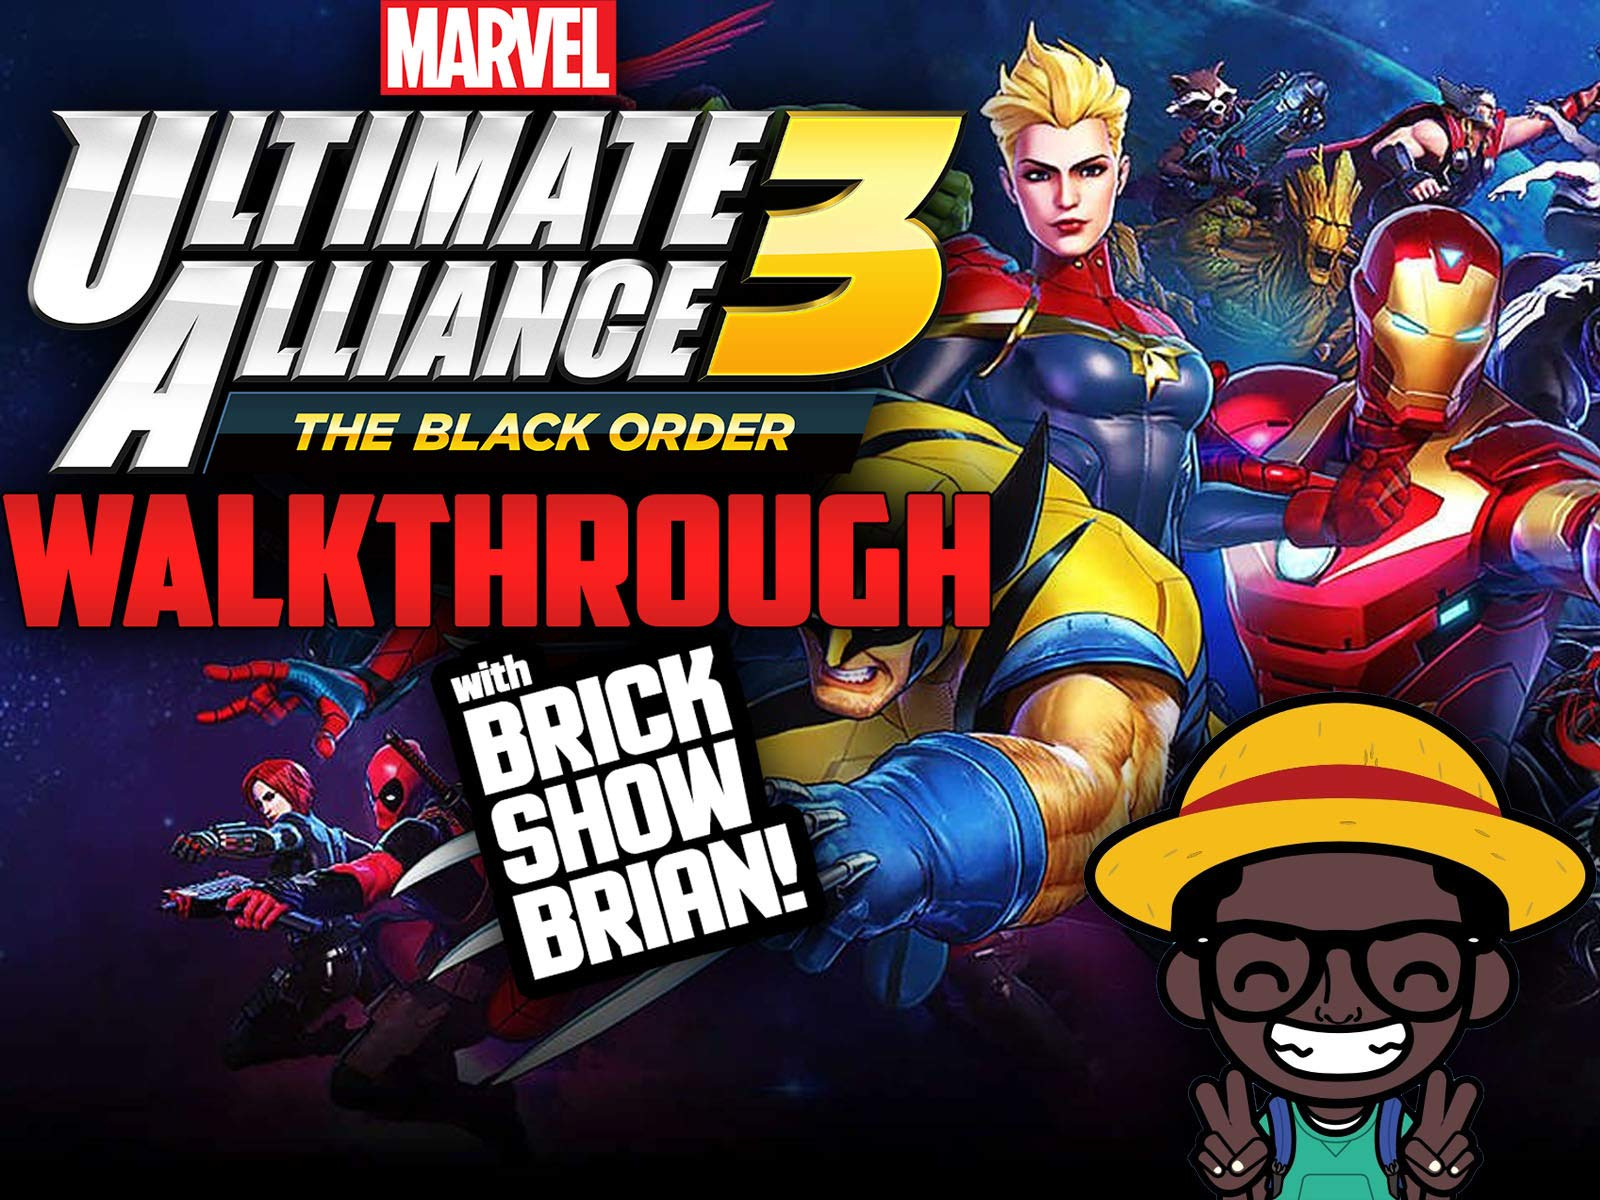 Watch Marvel Ultimate Alliance 3 The Black Order Walkthrough With